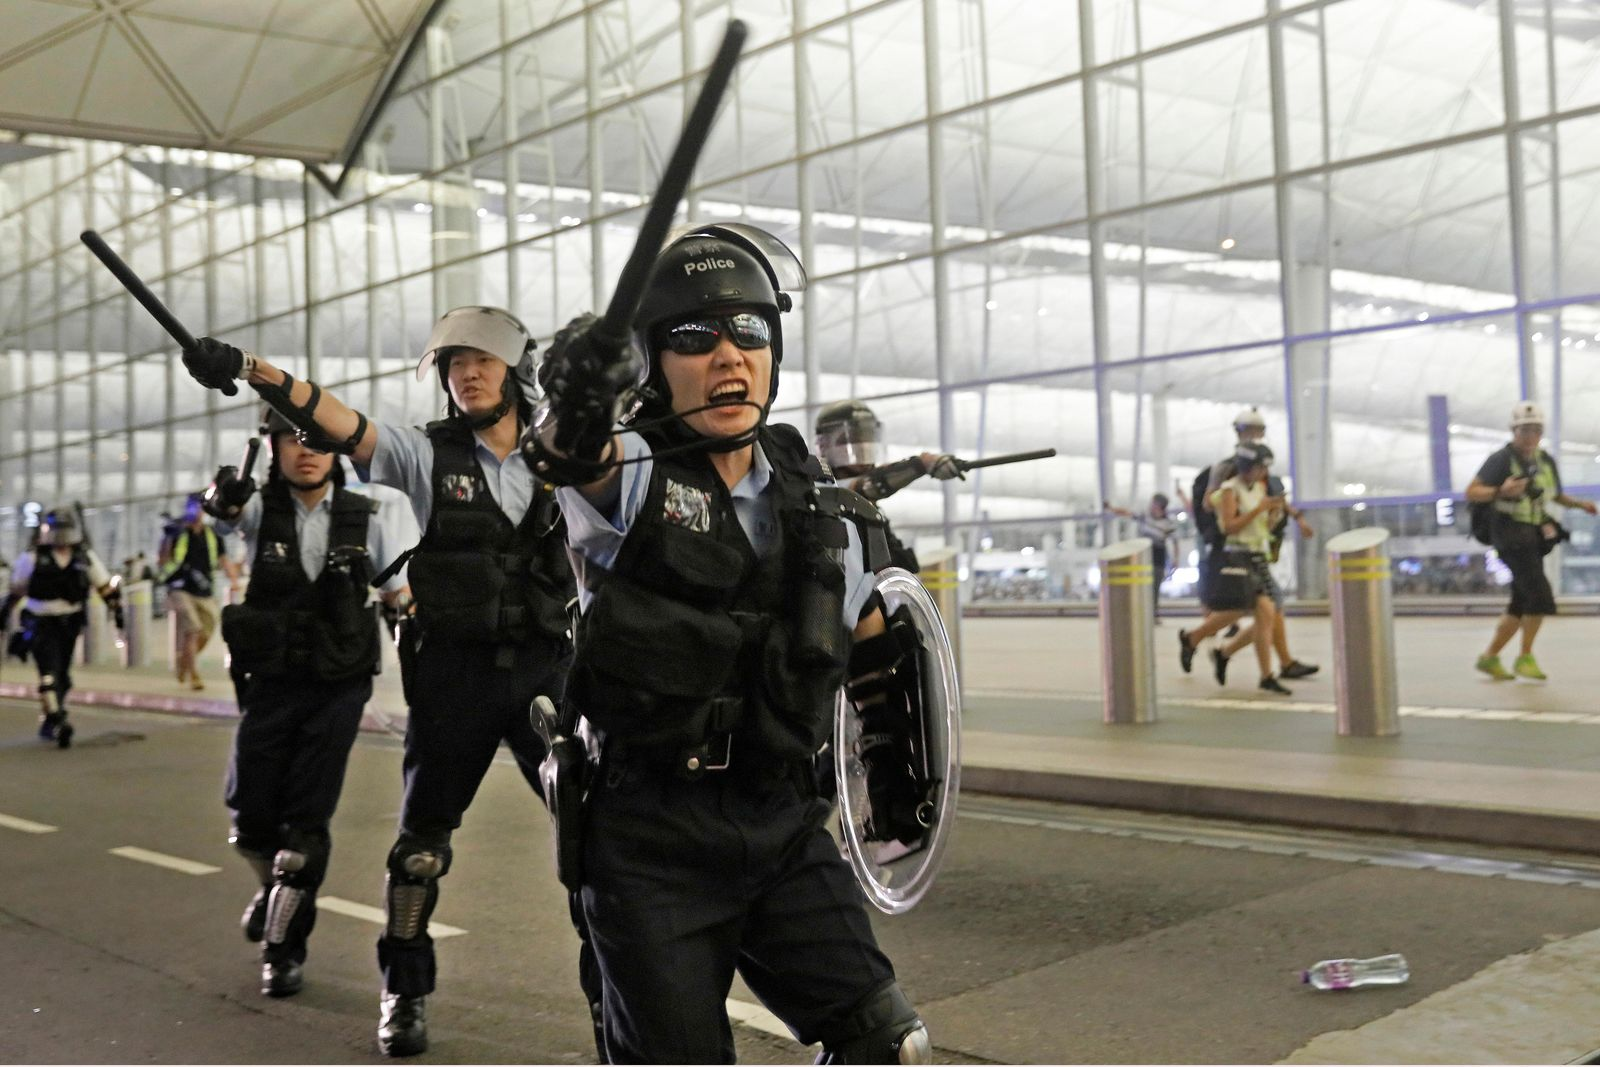 Policemen with batons and shields shout at protesters during a demonstration at the Airport in Hong Kong, Tuesday, Aug. 13, 2019. Riot police clashed with pro-democracy protesters at Hong Kong's airport late Tuesday night, a chaotic end to a second day of demonstrations that caused mass flight cancellations at the Chinese city's busy transport hub. (AP Photo/Vincent Yu)